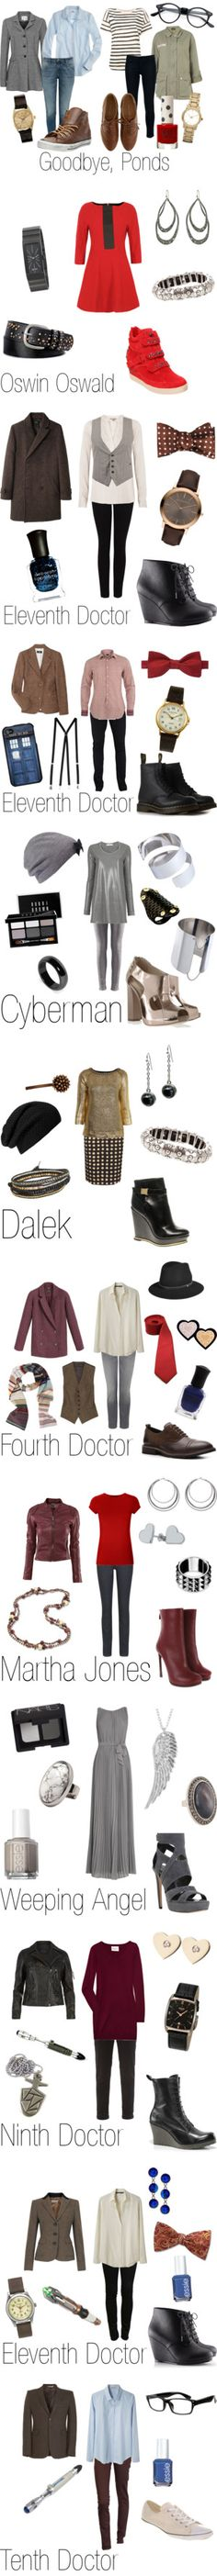 """Doctor Who & Torchwood"" by ja-vy ❤ liked on Polyvore"